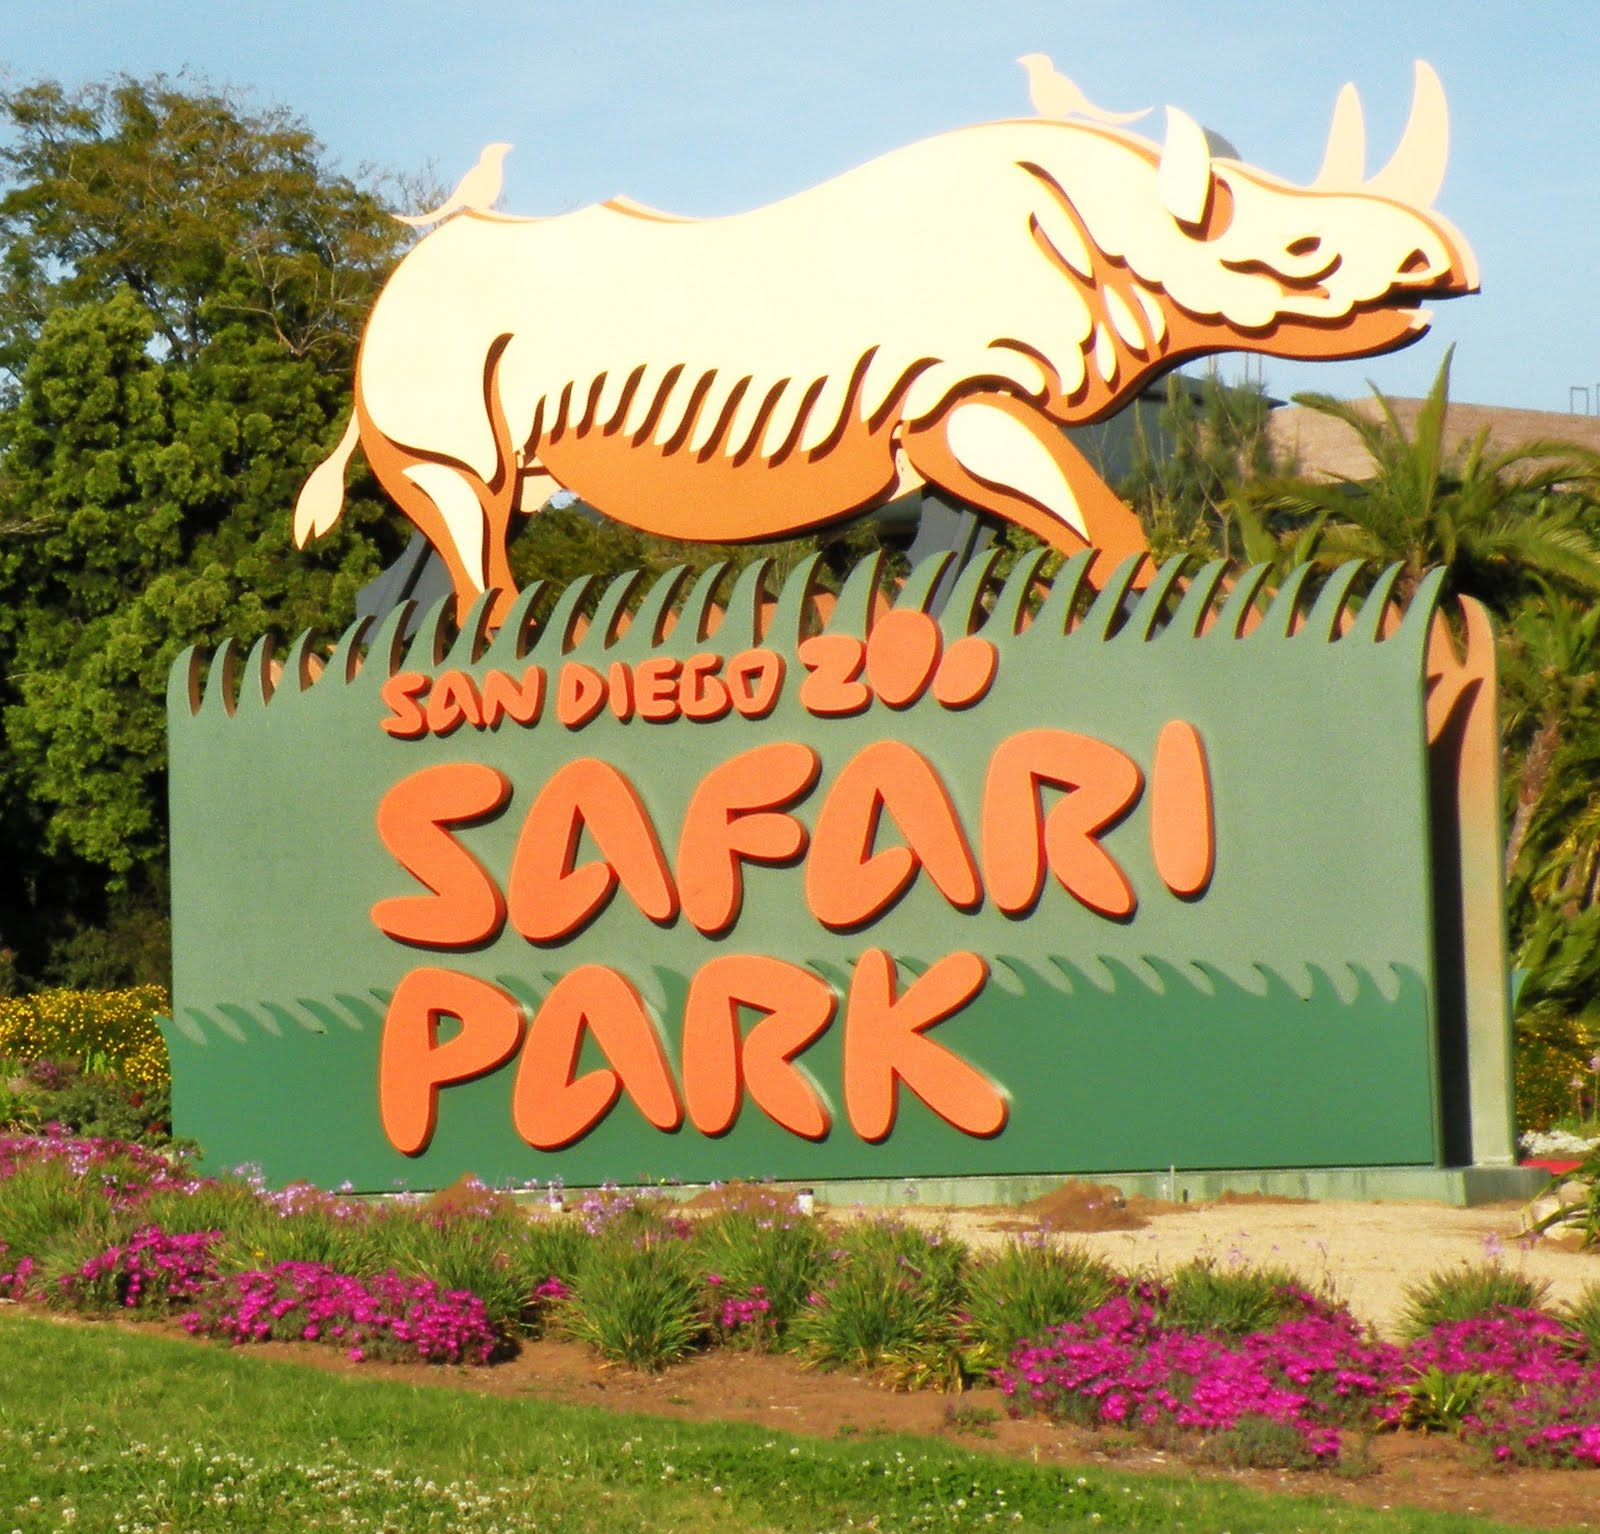 Travel Review: San Diego Zoo Safari Park